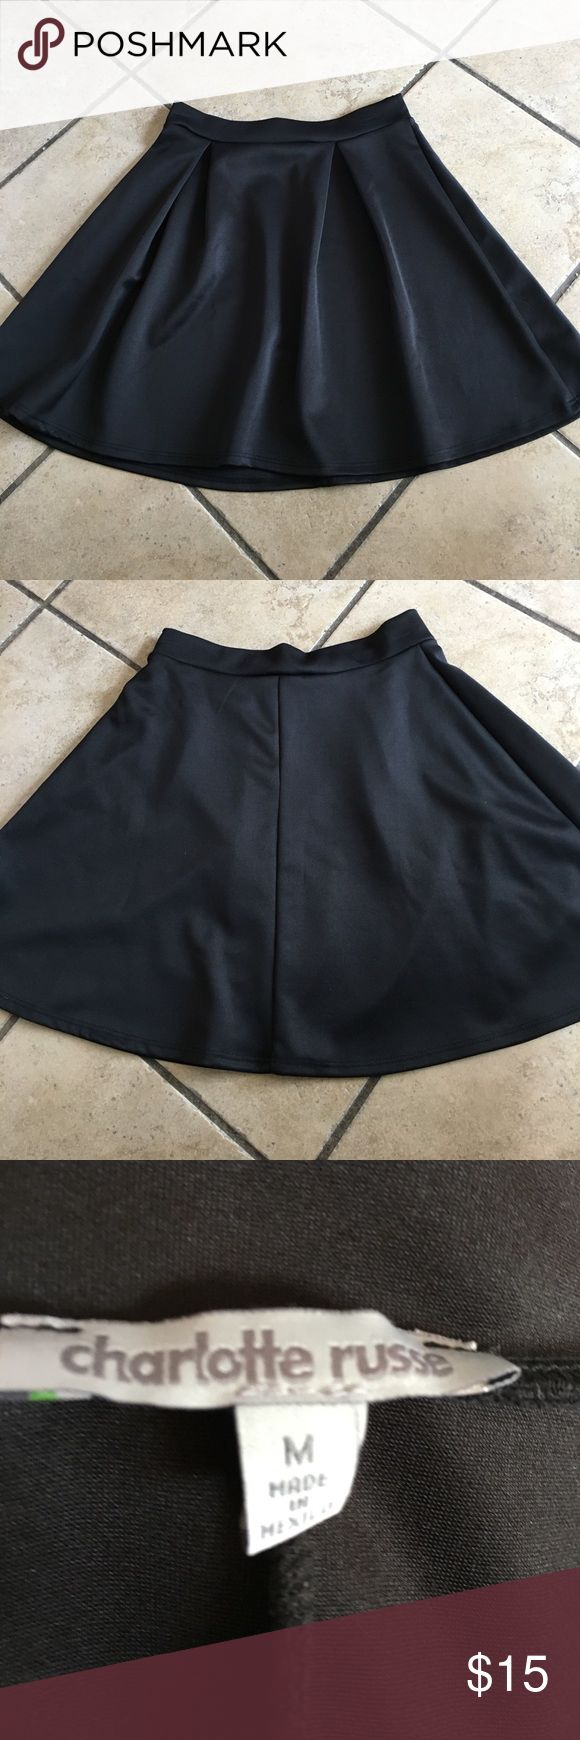 Black skater skirt Pleated black circle skater skirt. Only worn twice! Great for dressing up and going out! Charlotte Russe Skirts Circle & Skater